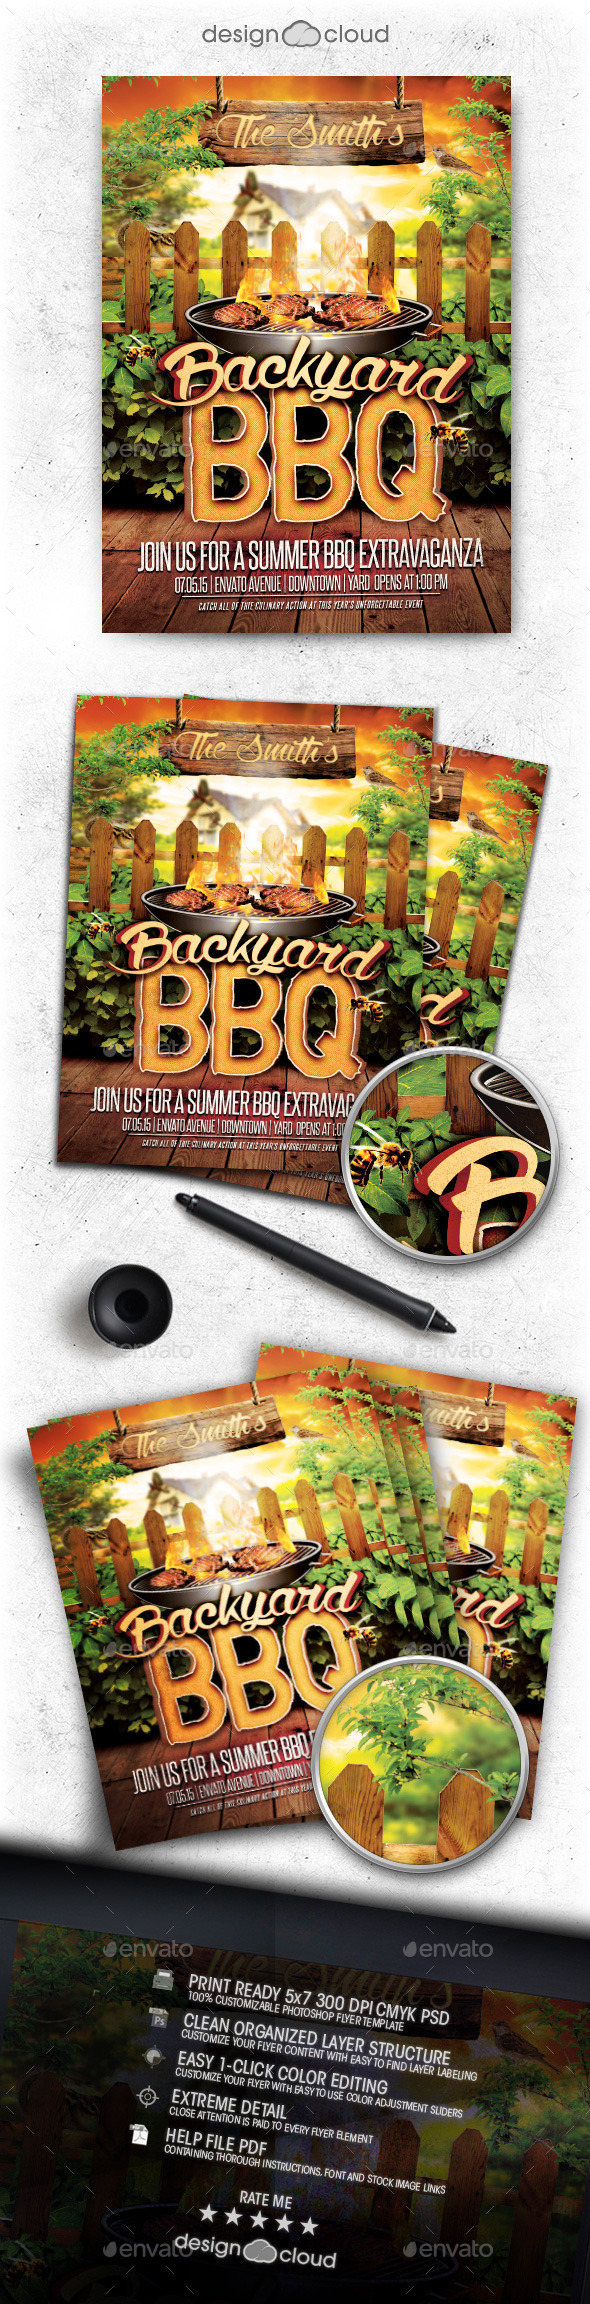 Backyard BBQ Flyer Template - Clubs & Parties Events